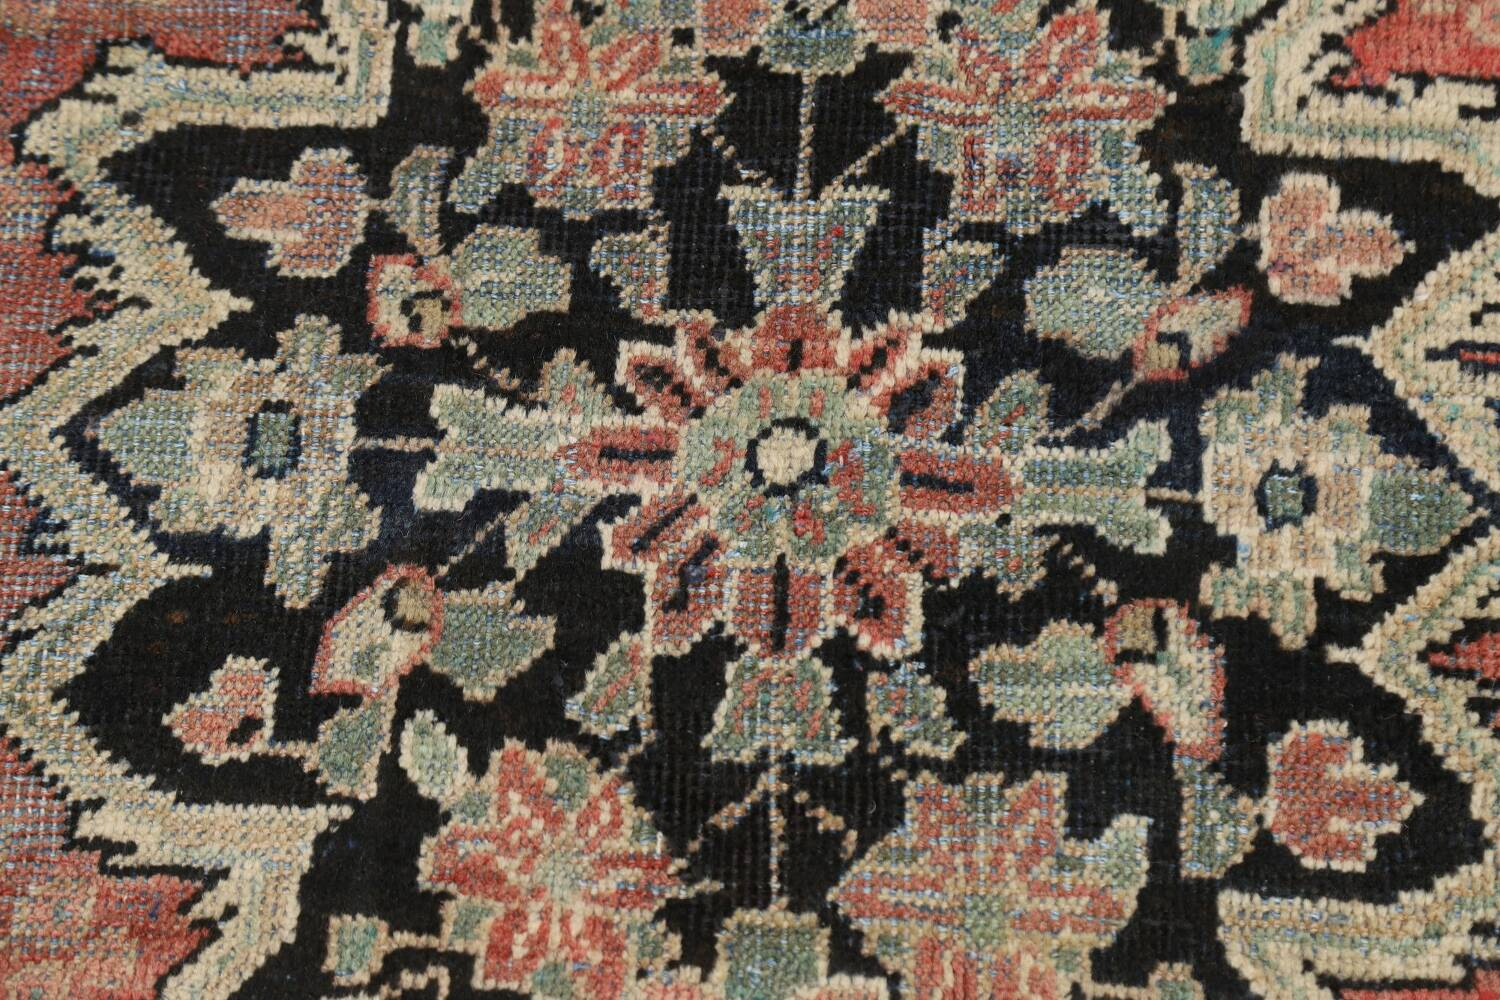 Antique Floral Mahal Persian Area Rug 3x6 image 10